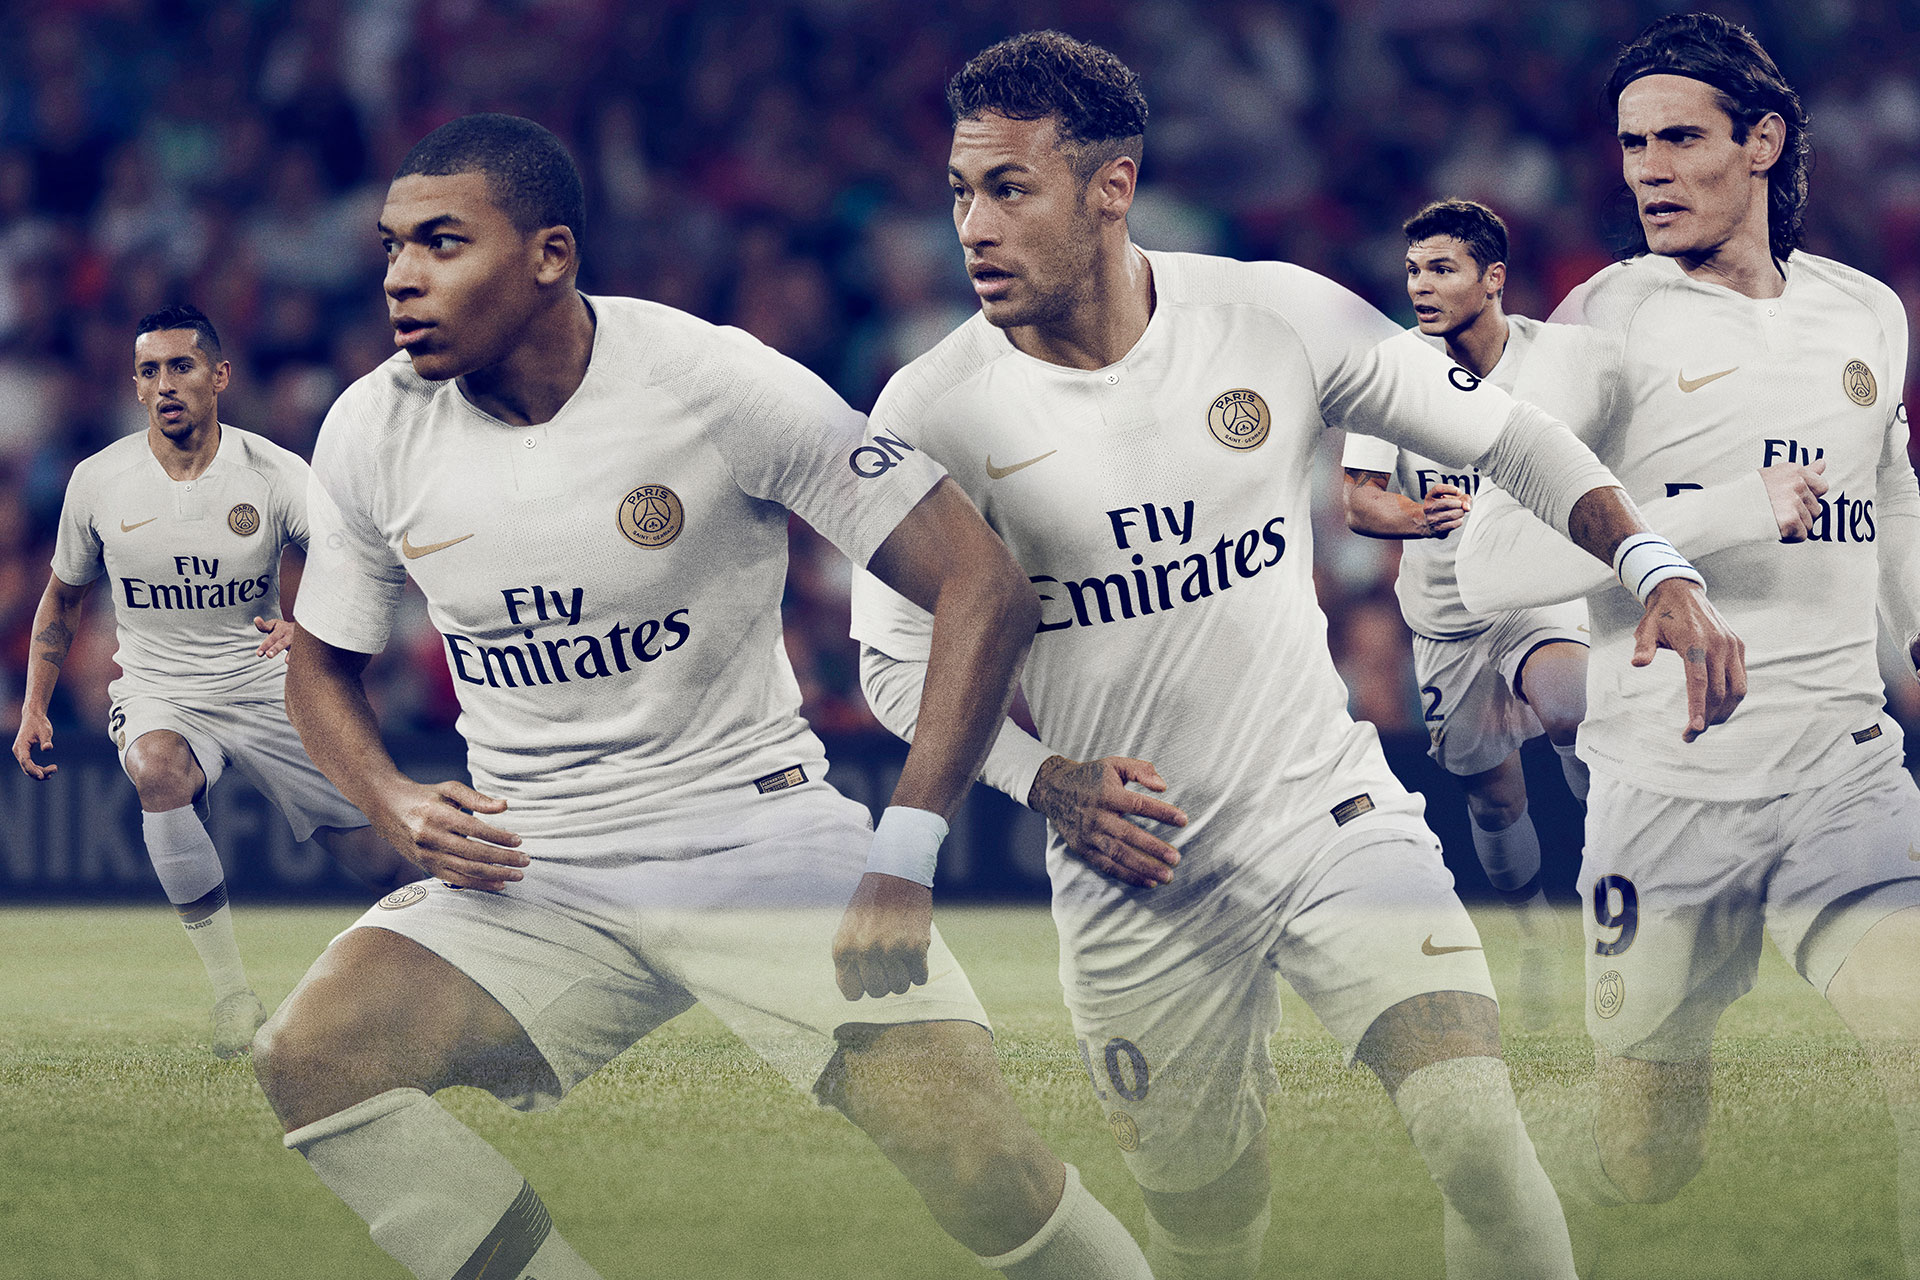 maillot-paris-saint-germain-exterieur--2018-2019-nike